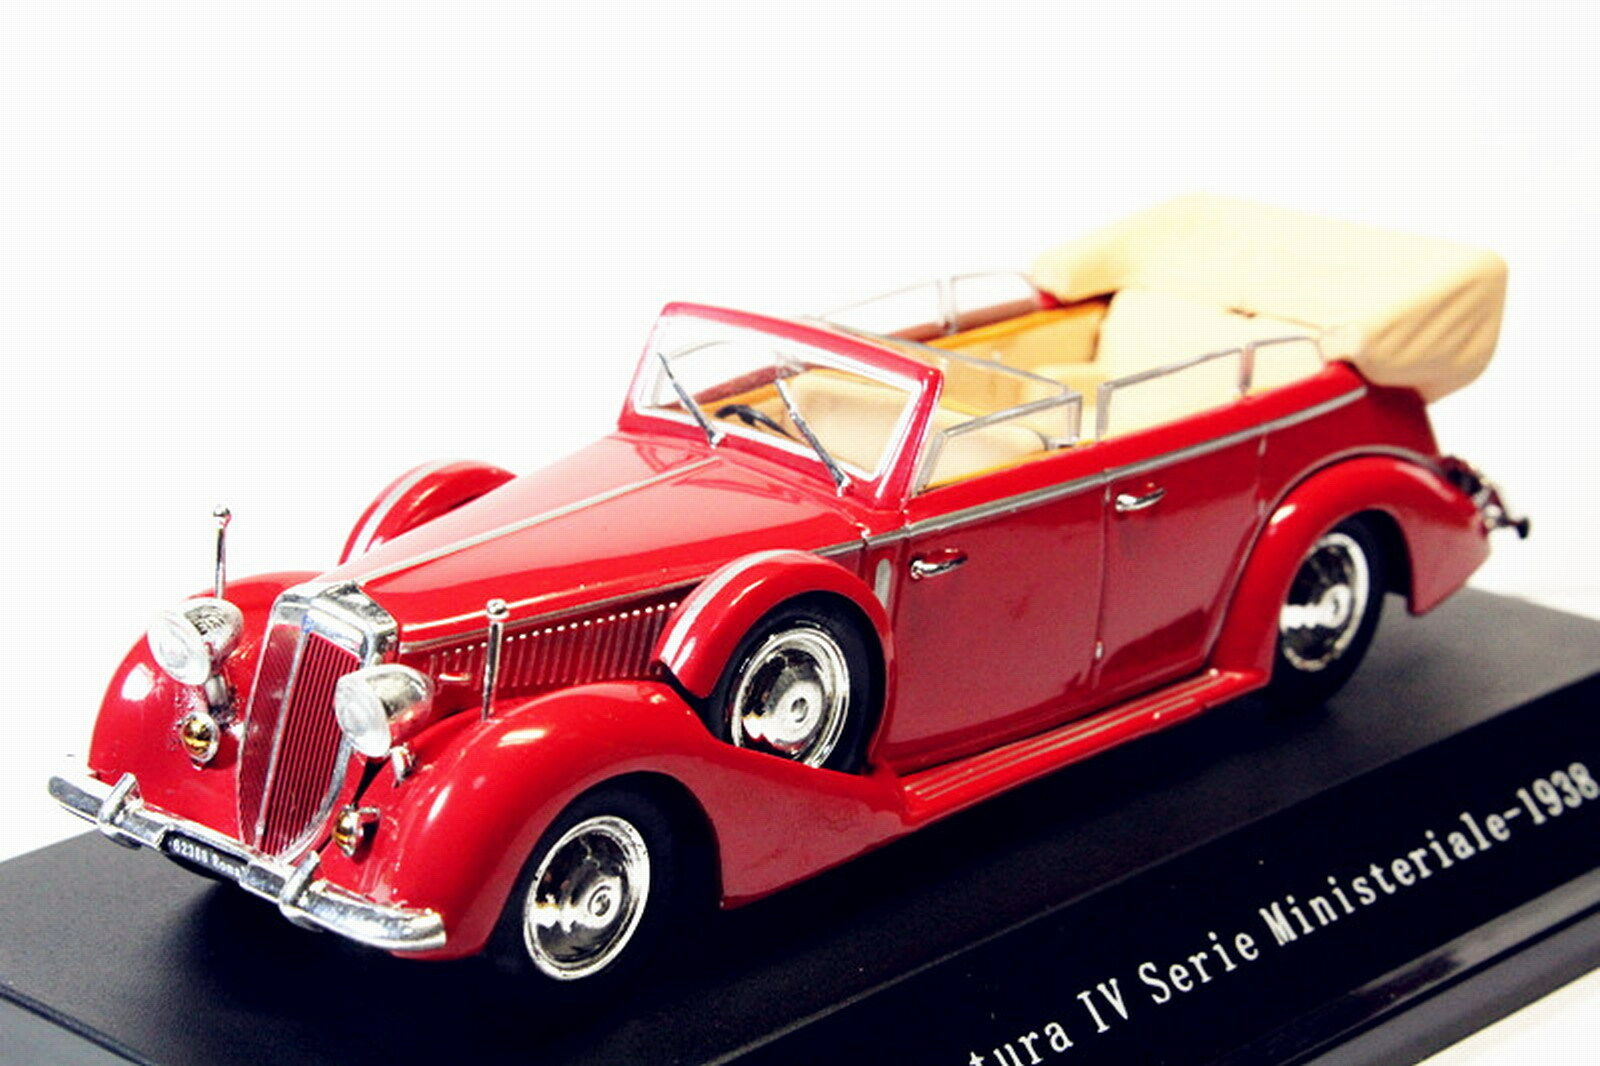 1/43 starline Lancia Astura Ministeriale IV Serie 1938 RED Diecast model Toy